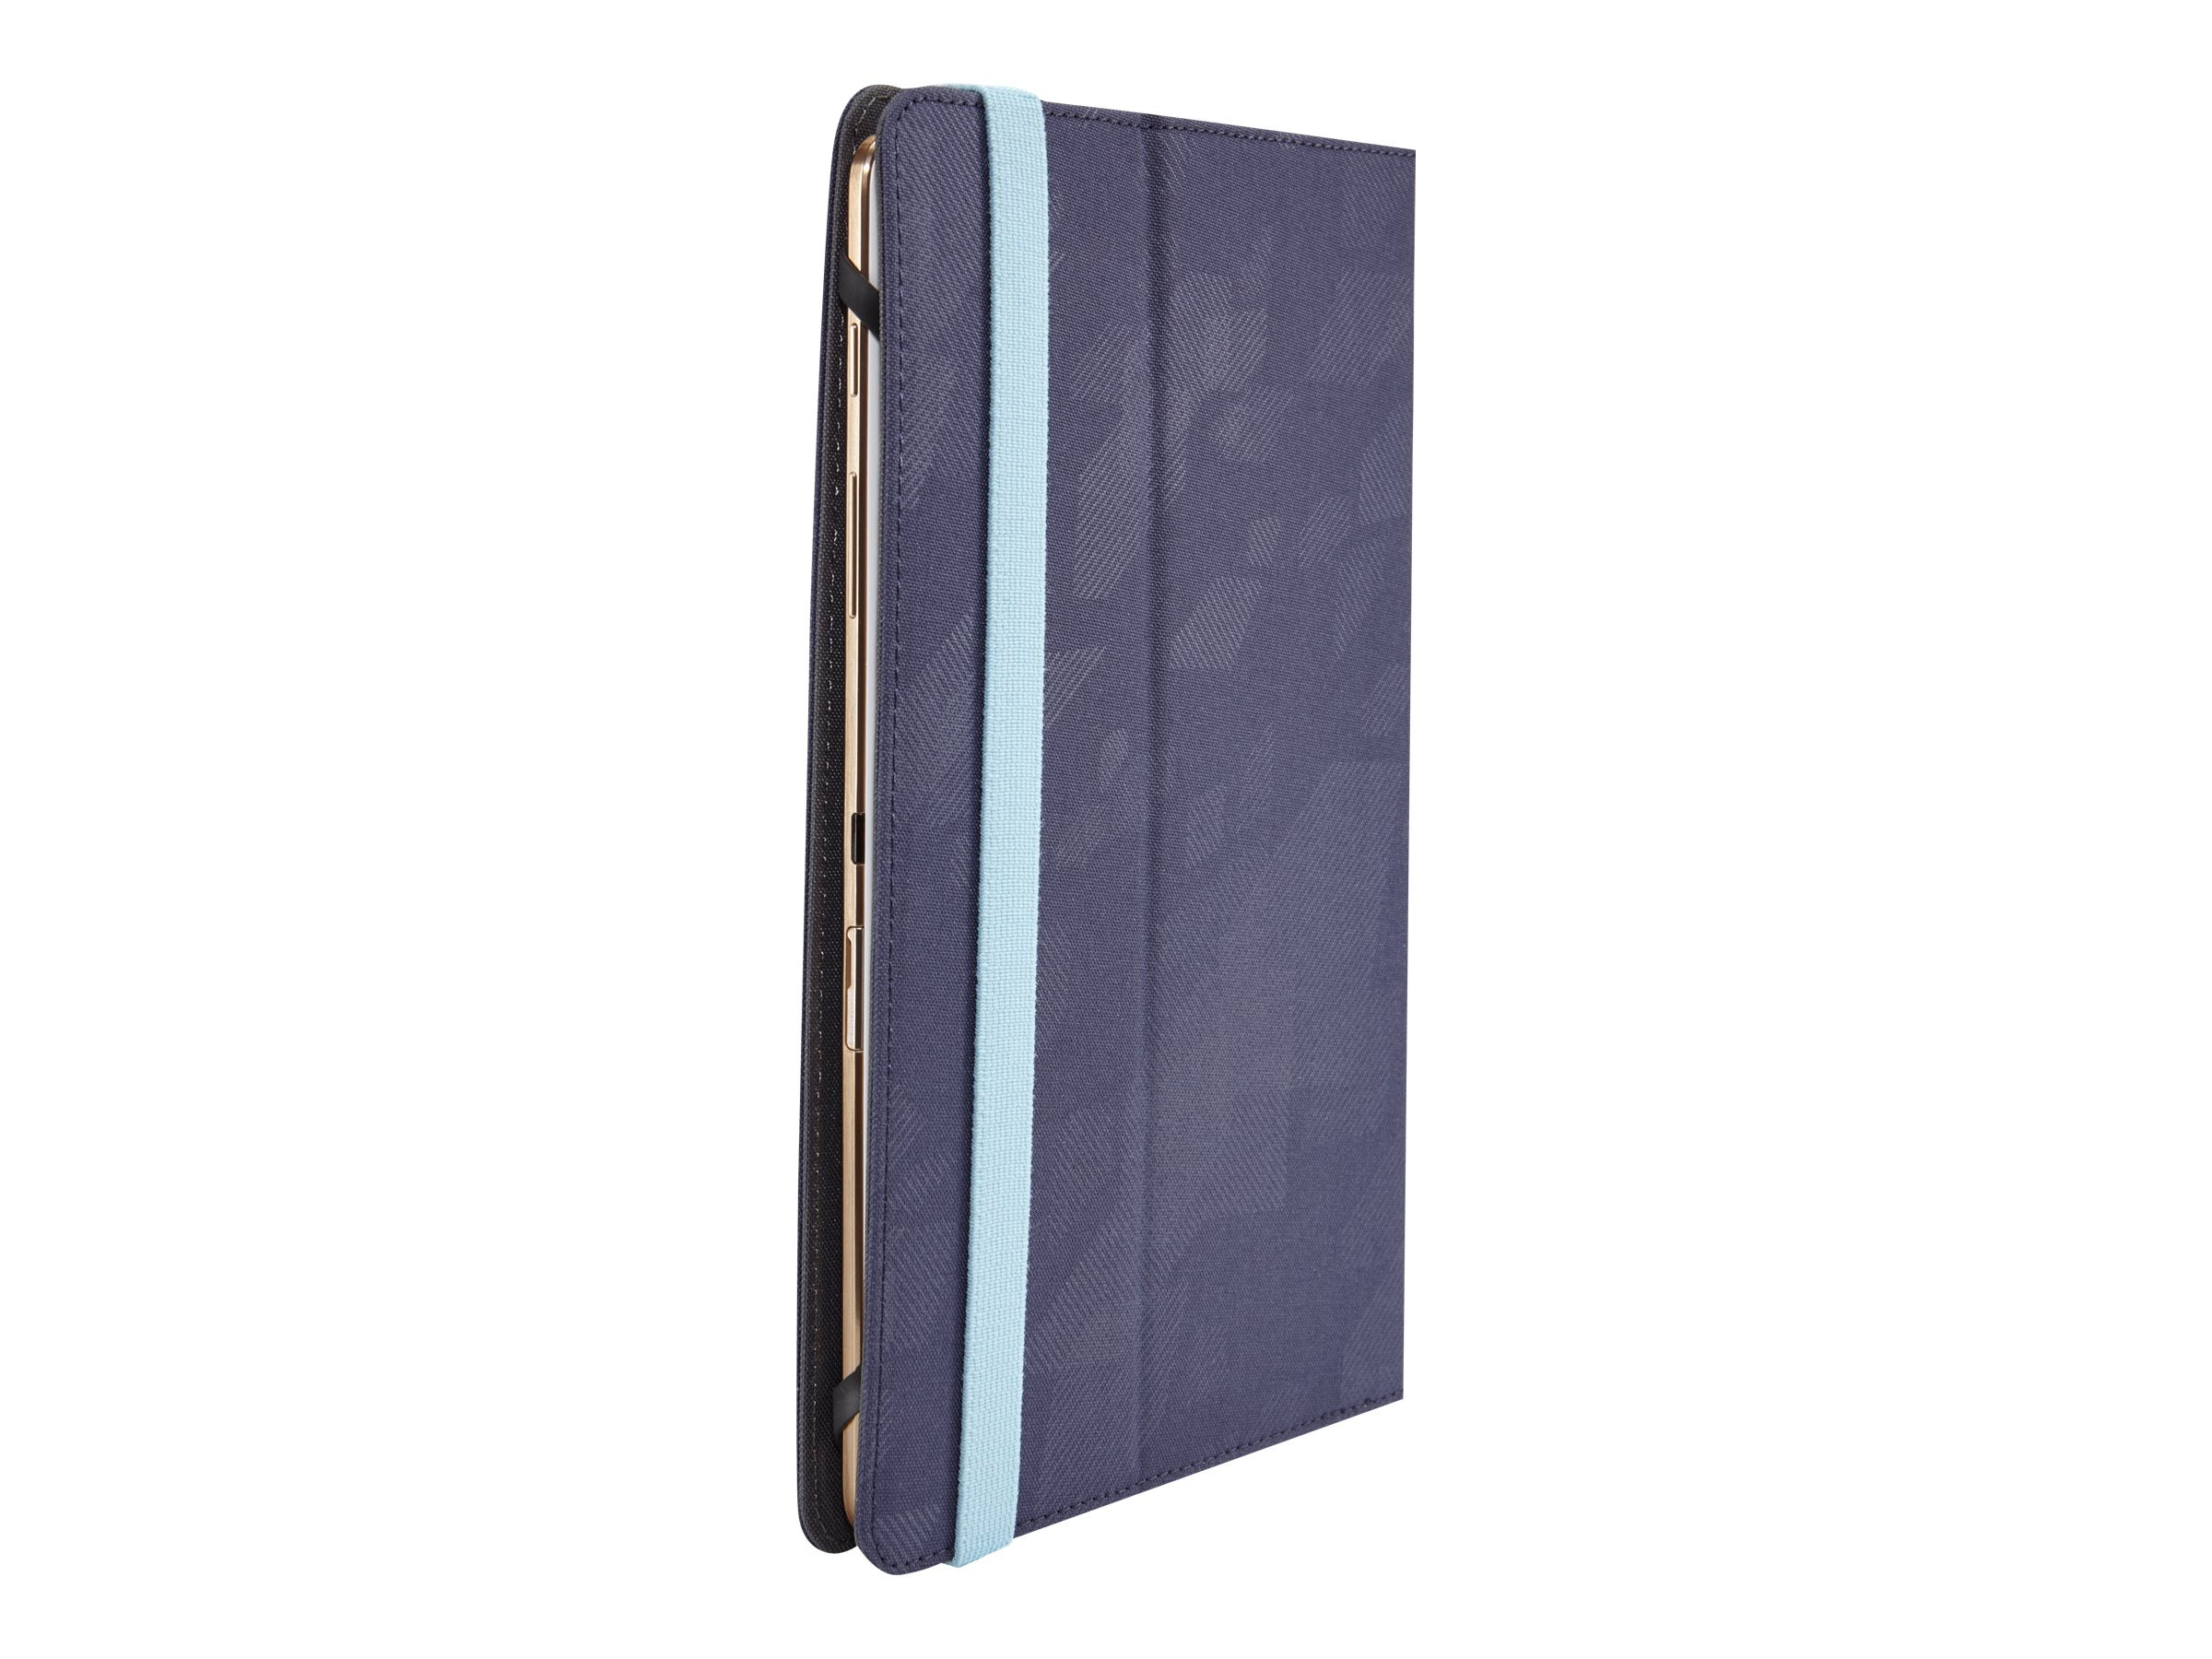 Case Logic SureFit Folio for 8 Tablet, Indigo, CEUE1108INDIGO, 31285141, Carrying Cases - Tablets & eReaders